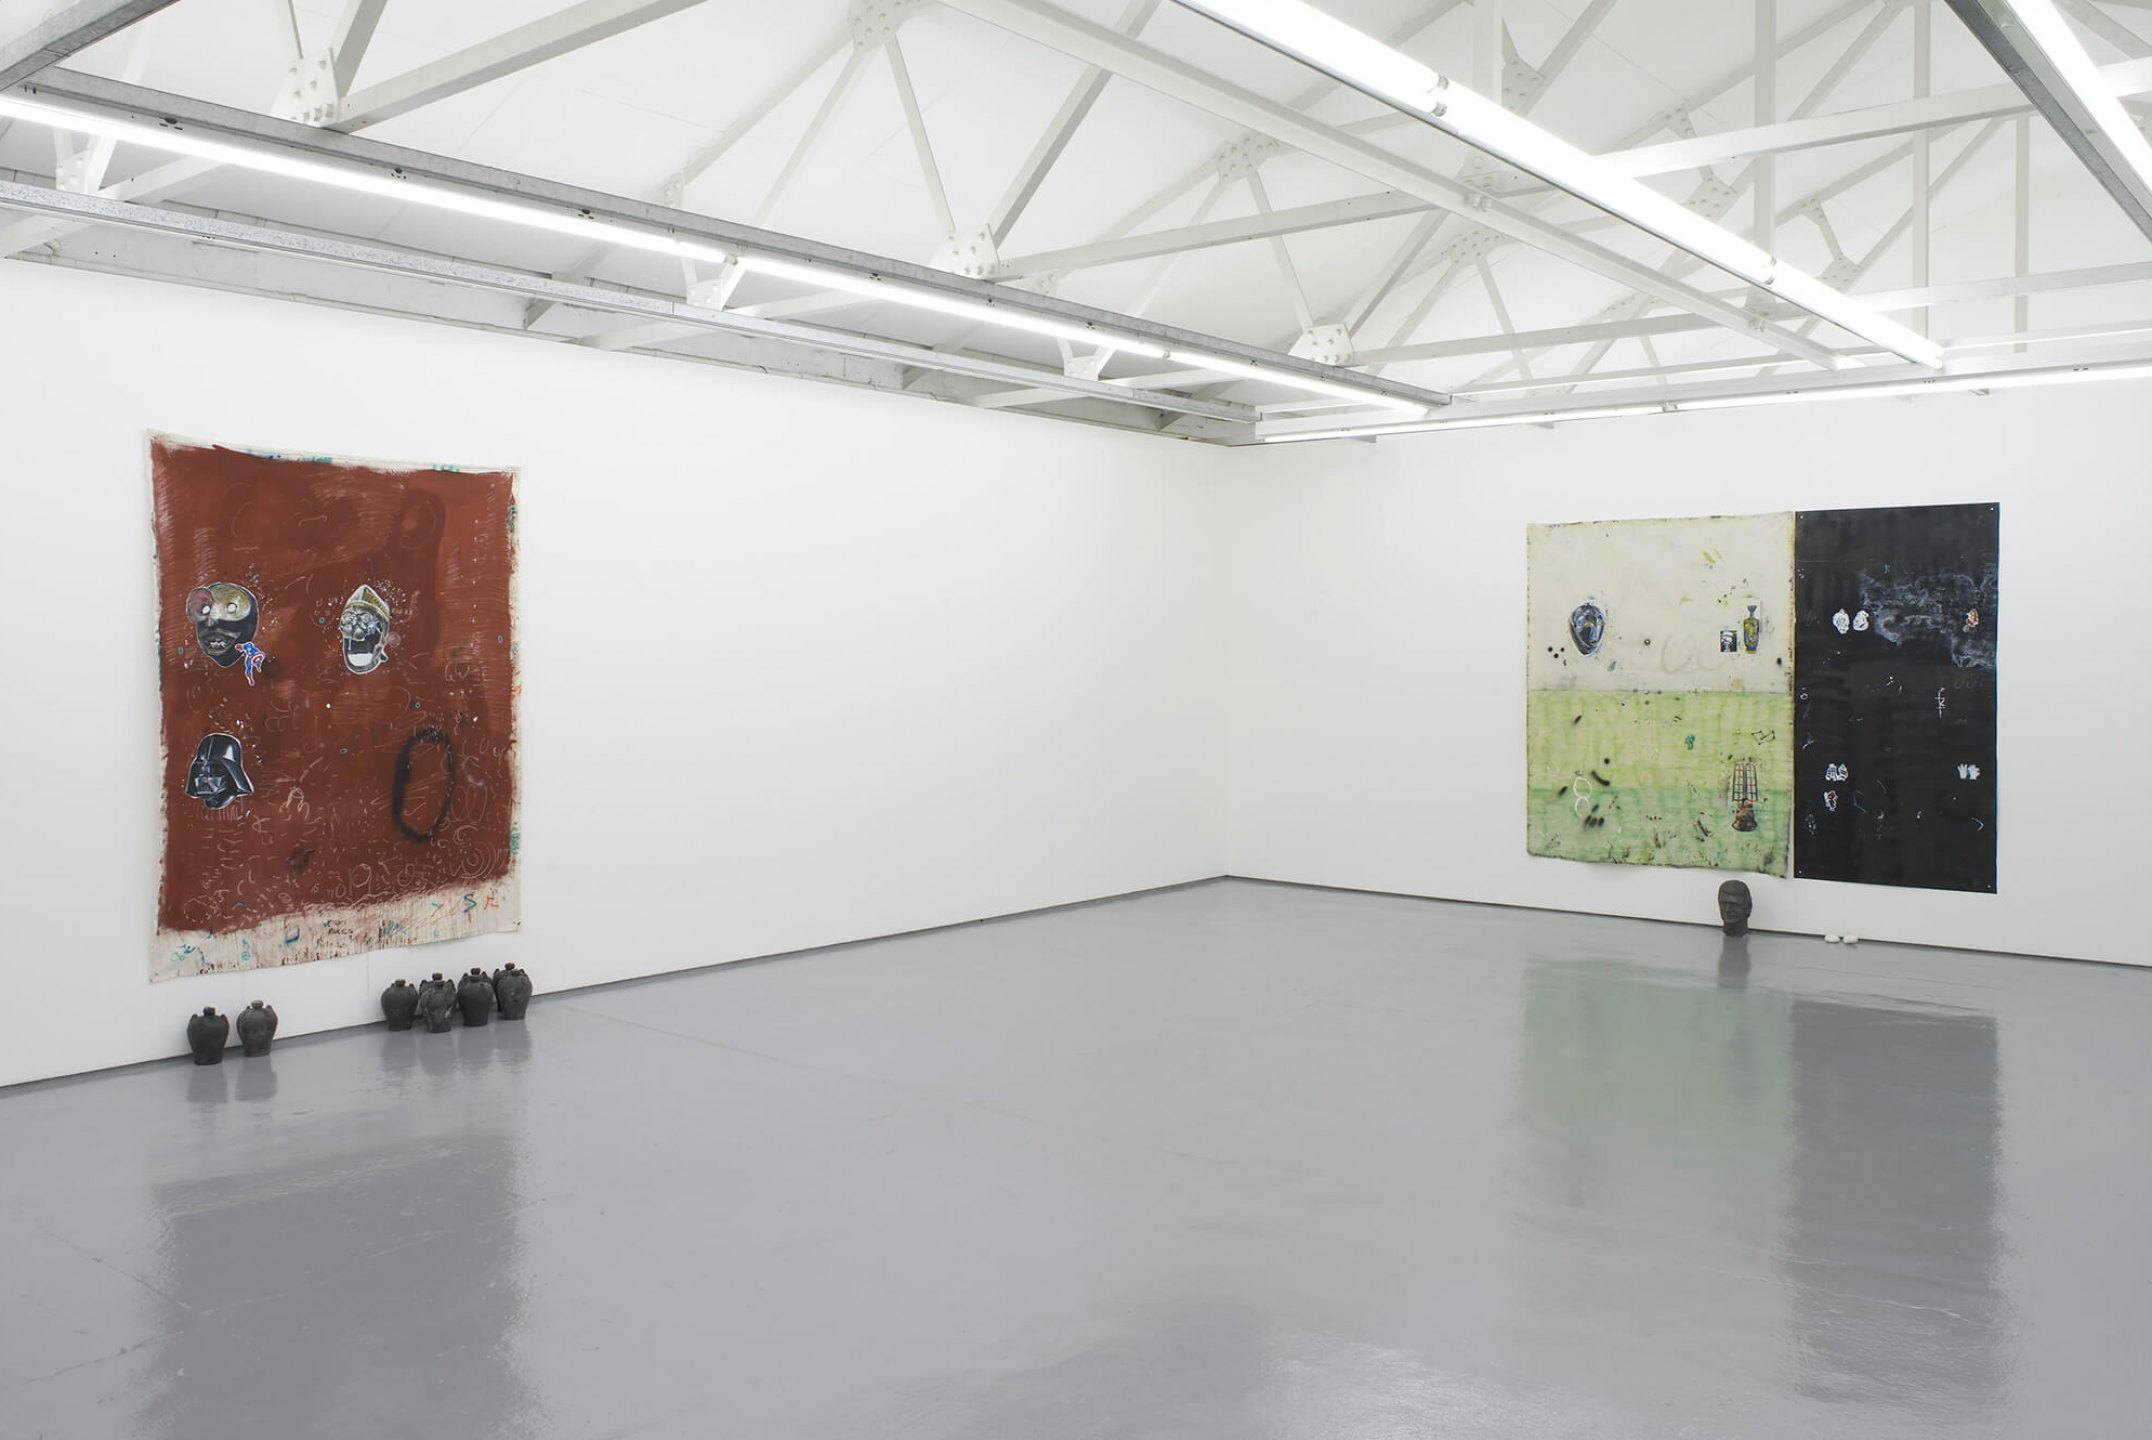 Paulo Nimer Pjota,<em>Synthesis between contradictory ideas and the plurality of the object as image II</em>, Maureen Paley, London, 2016 - Mendes Wood DM